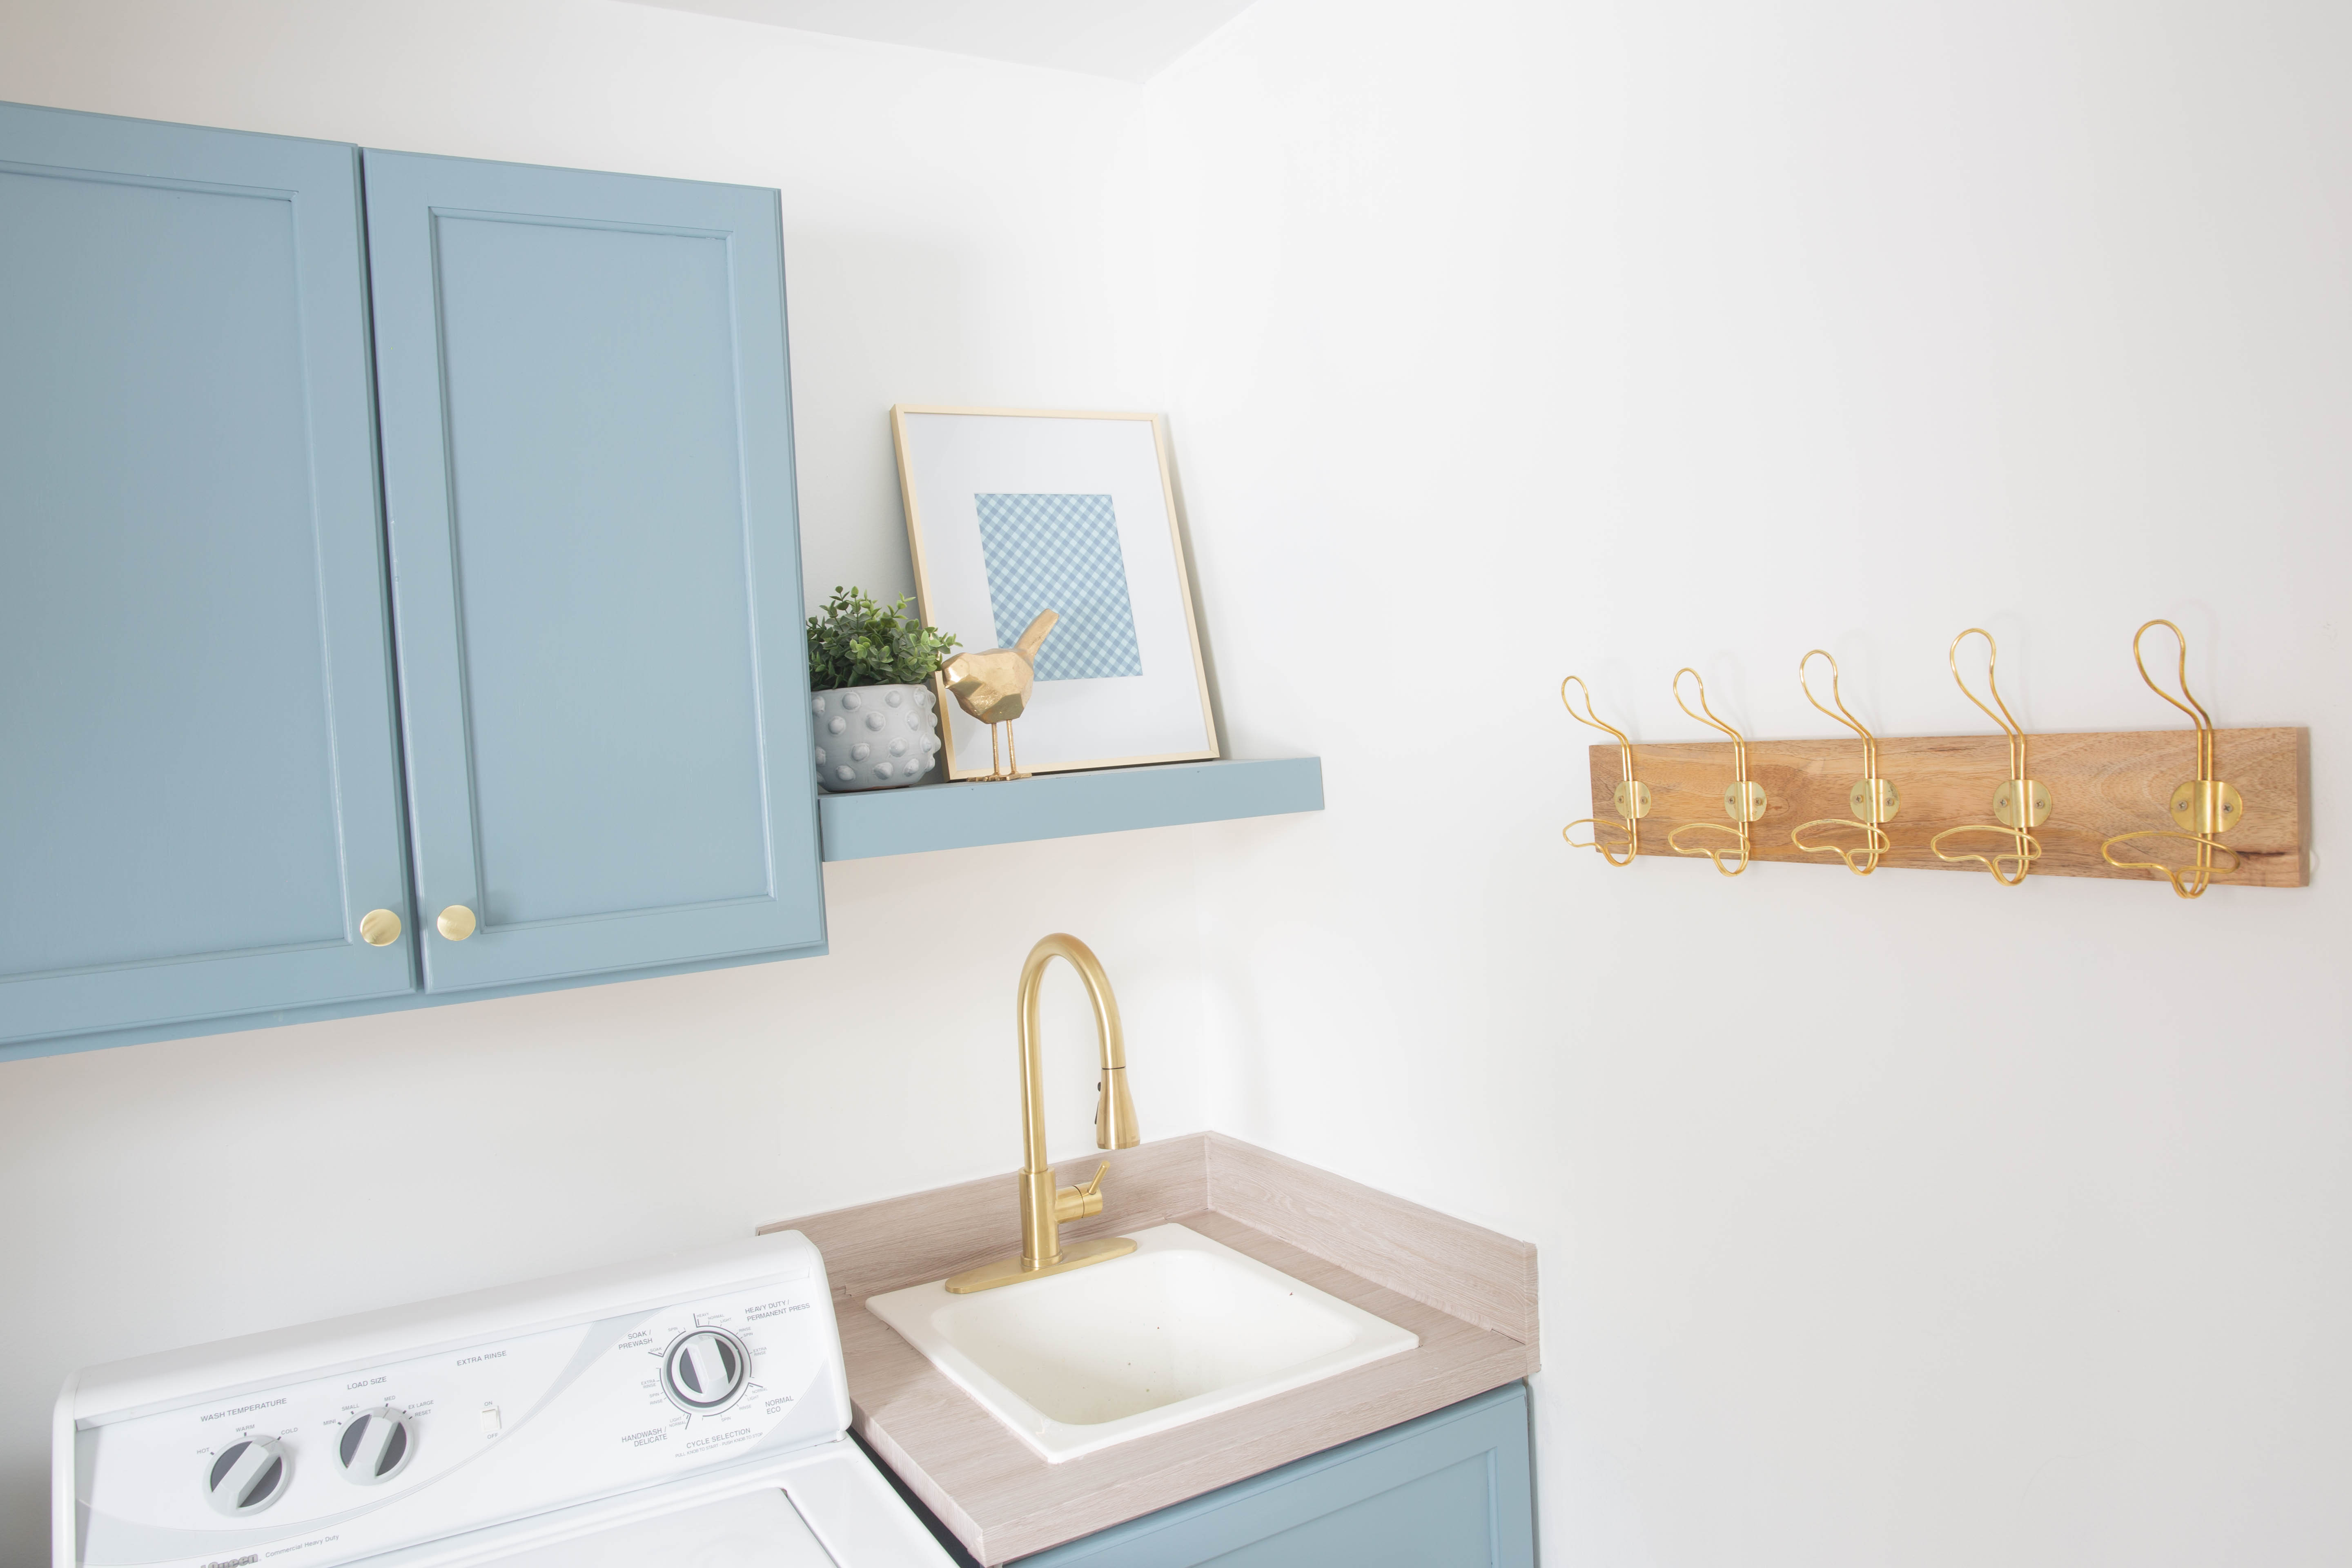 DIY Laundry Room Makeover - Blue Laundry Room Cabinets - Light Blue Laundry Room Cabinets - DIY Laundry Room - Small Laundry Room Makeover - Laundry Room Makeover on a Budget